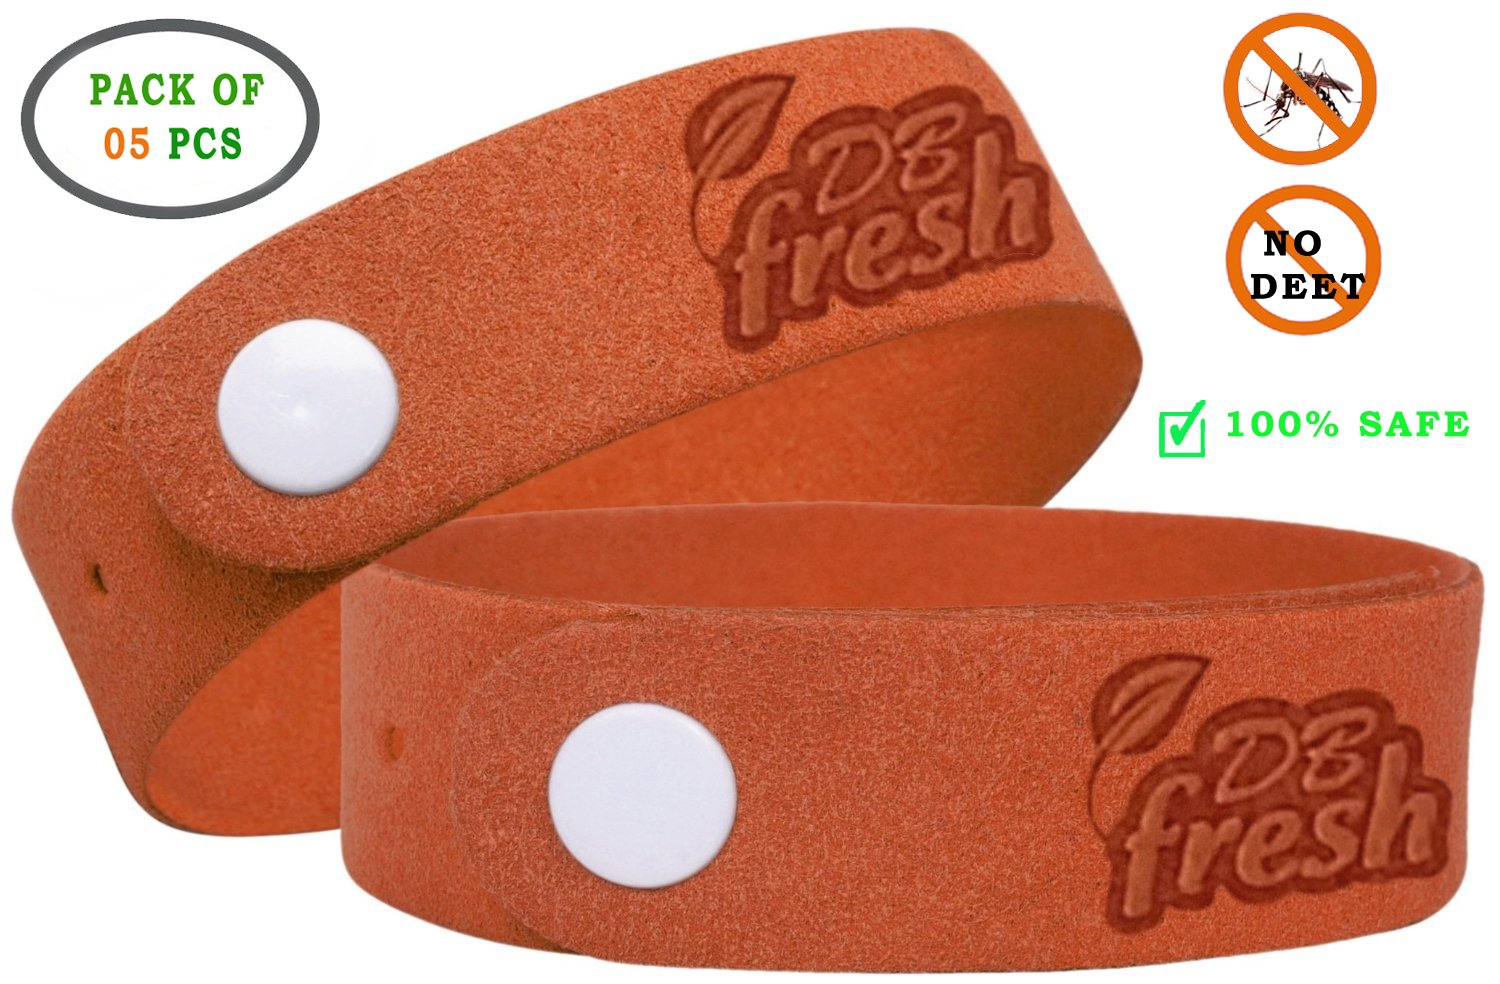 Non Toxic Deet Free Natural Insect Repellent Bracelets